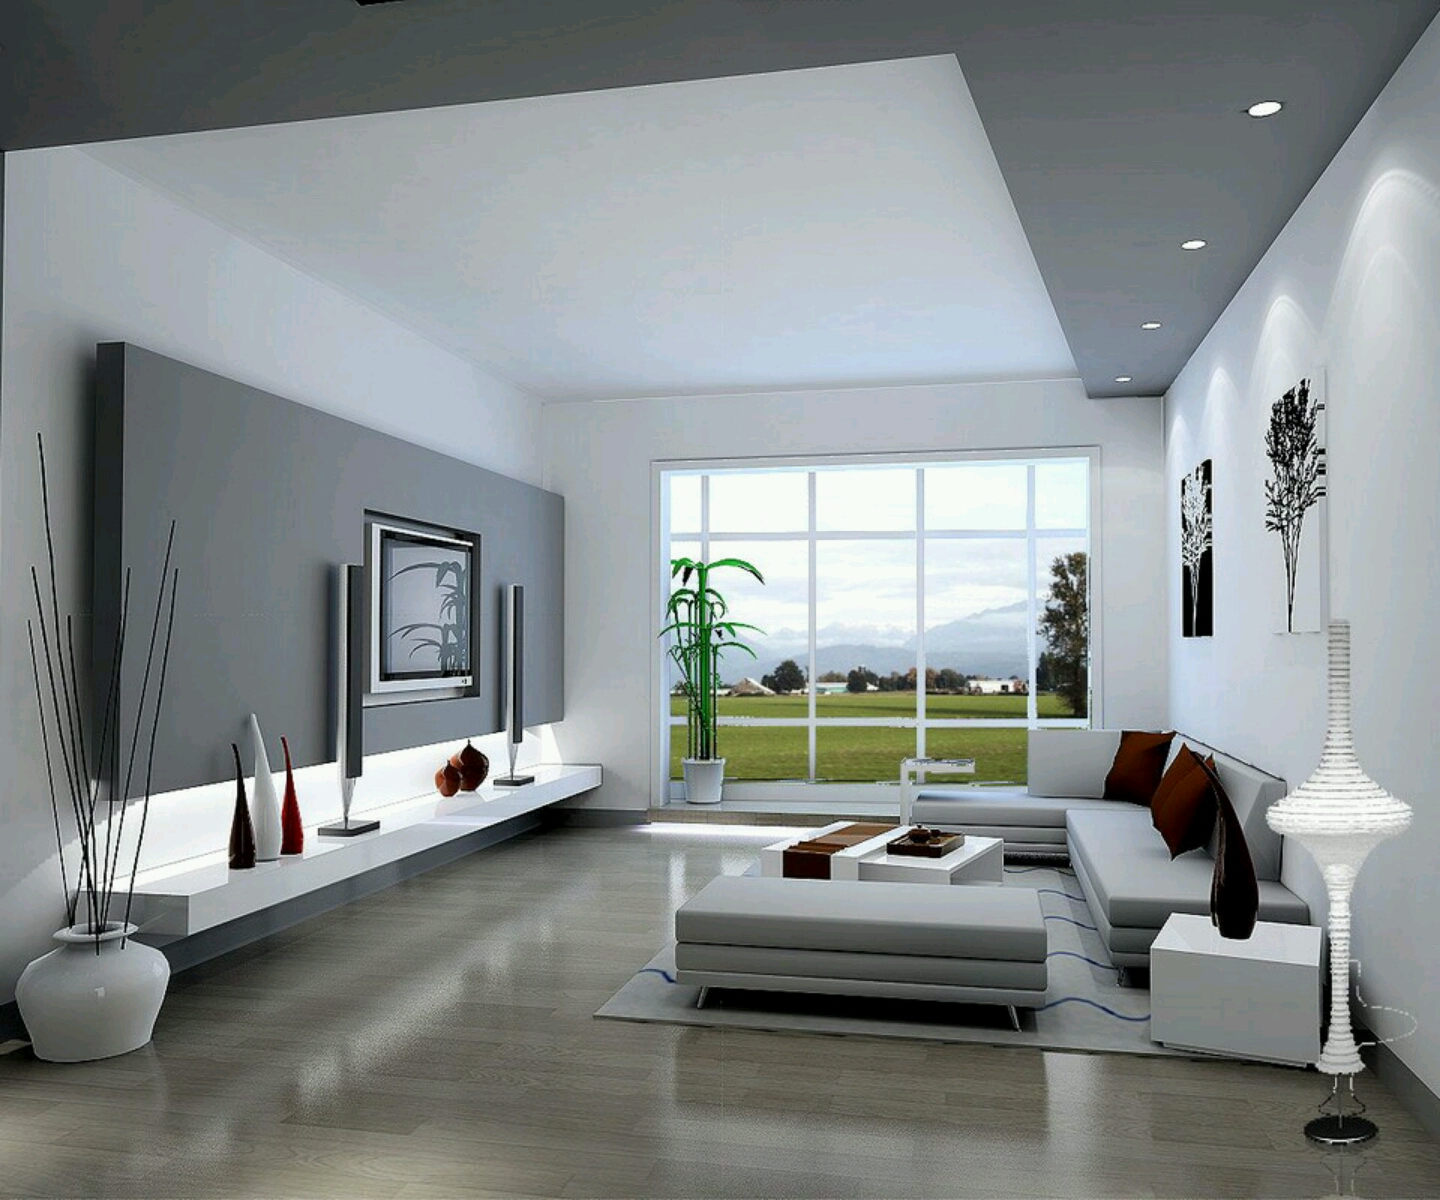 New home designs latest modern living rooms interior designs ideas - Modern intiror room ...